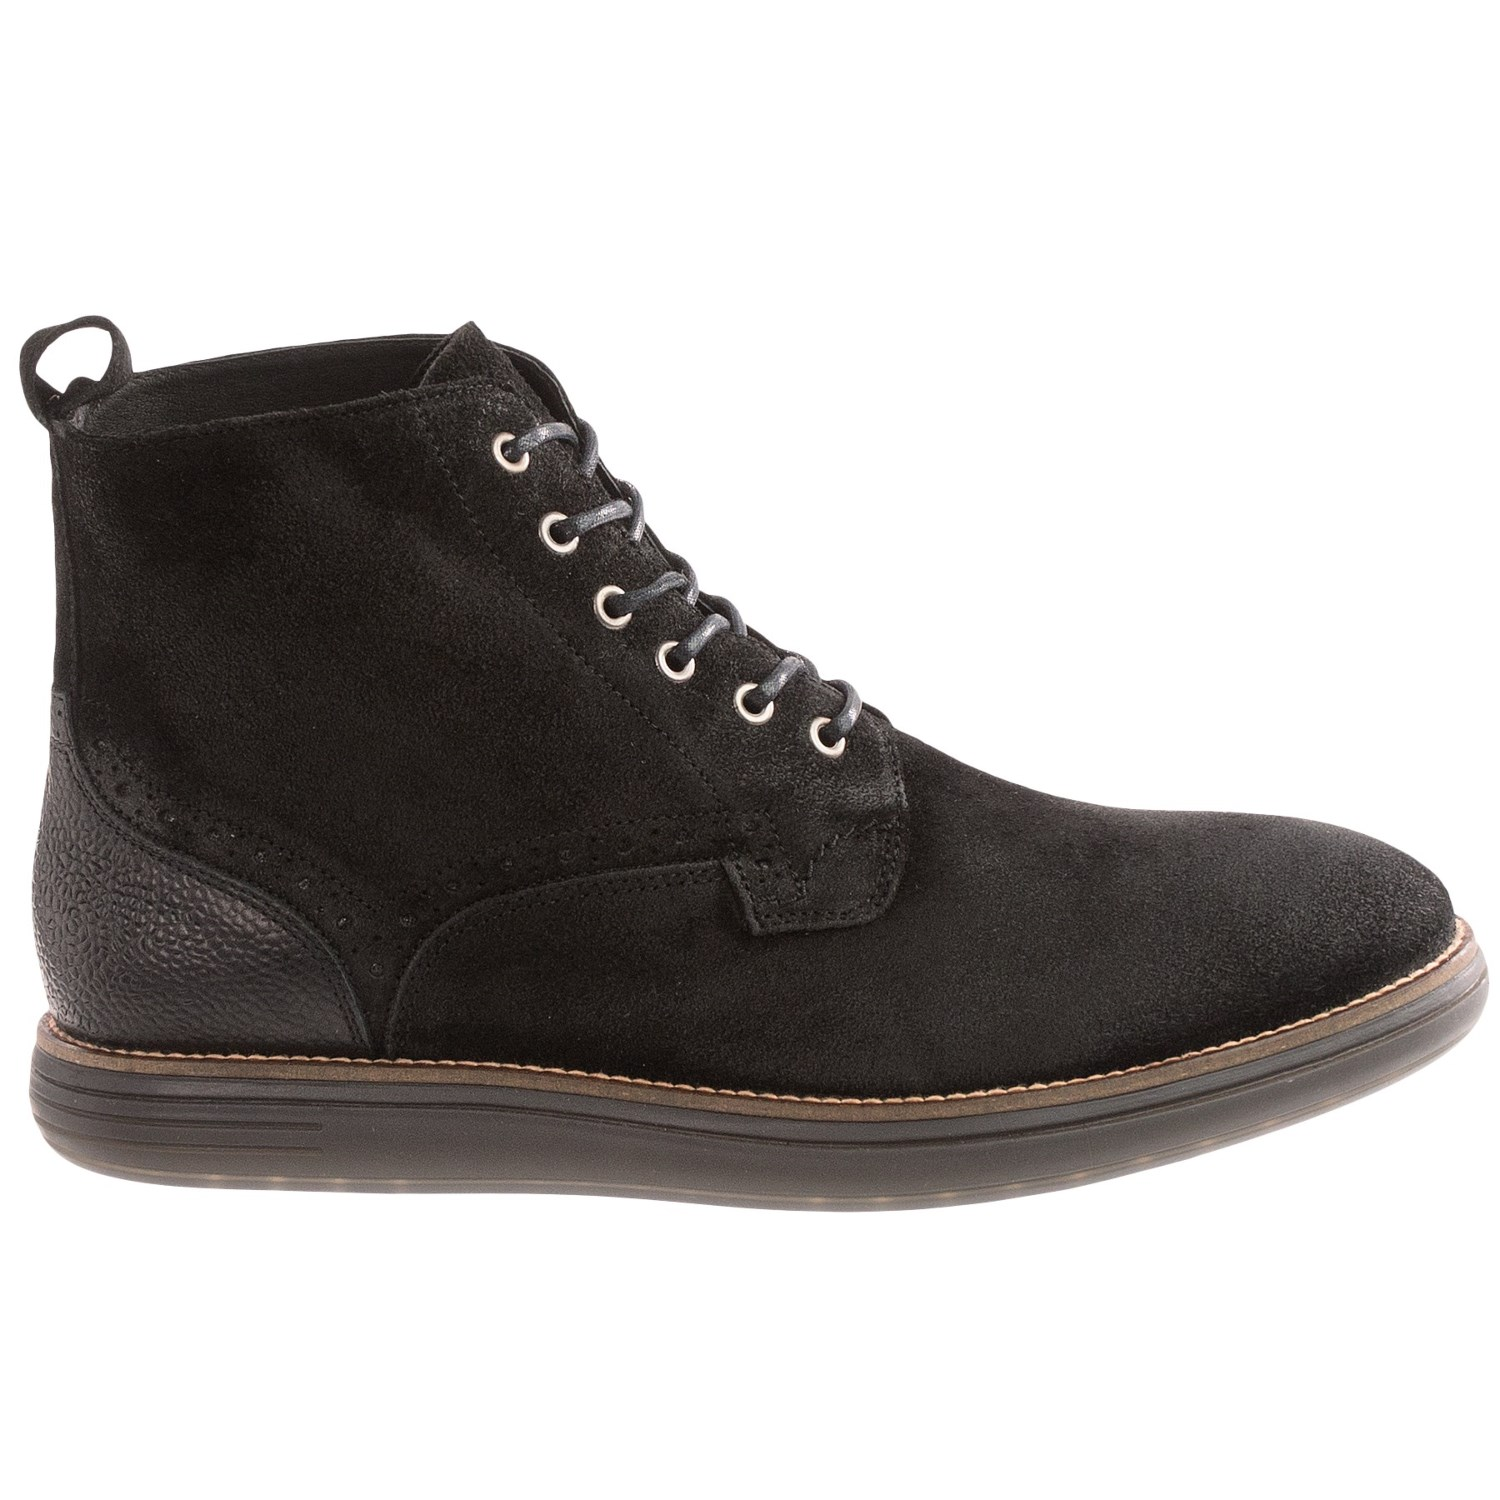 Suede Boots For Men h2LC69N7